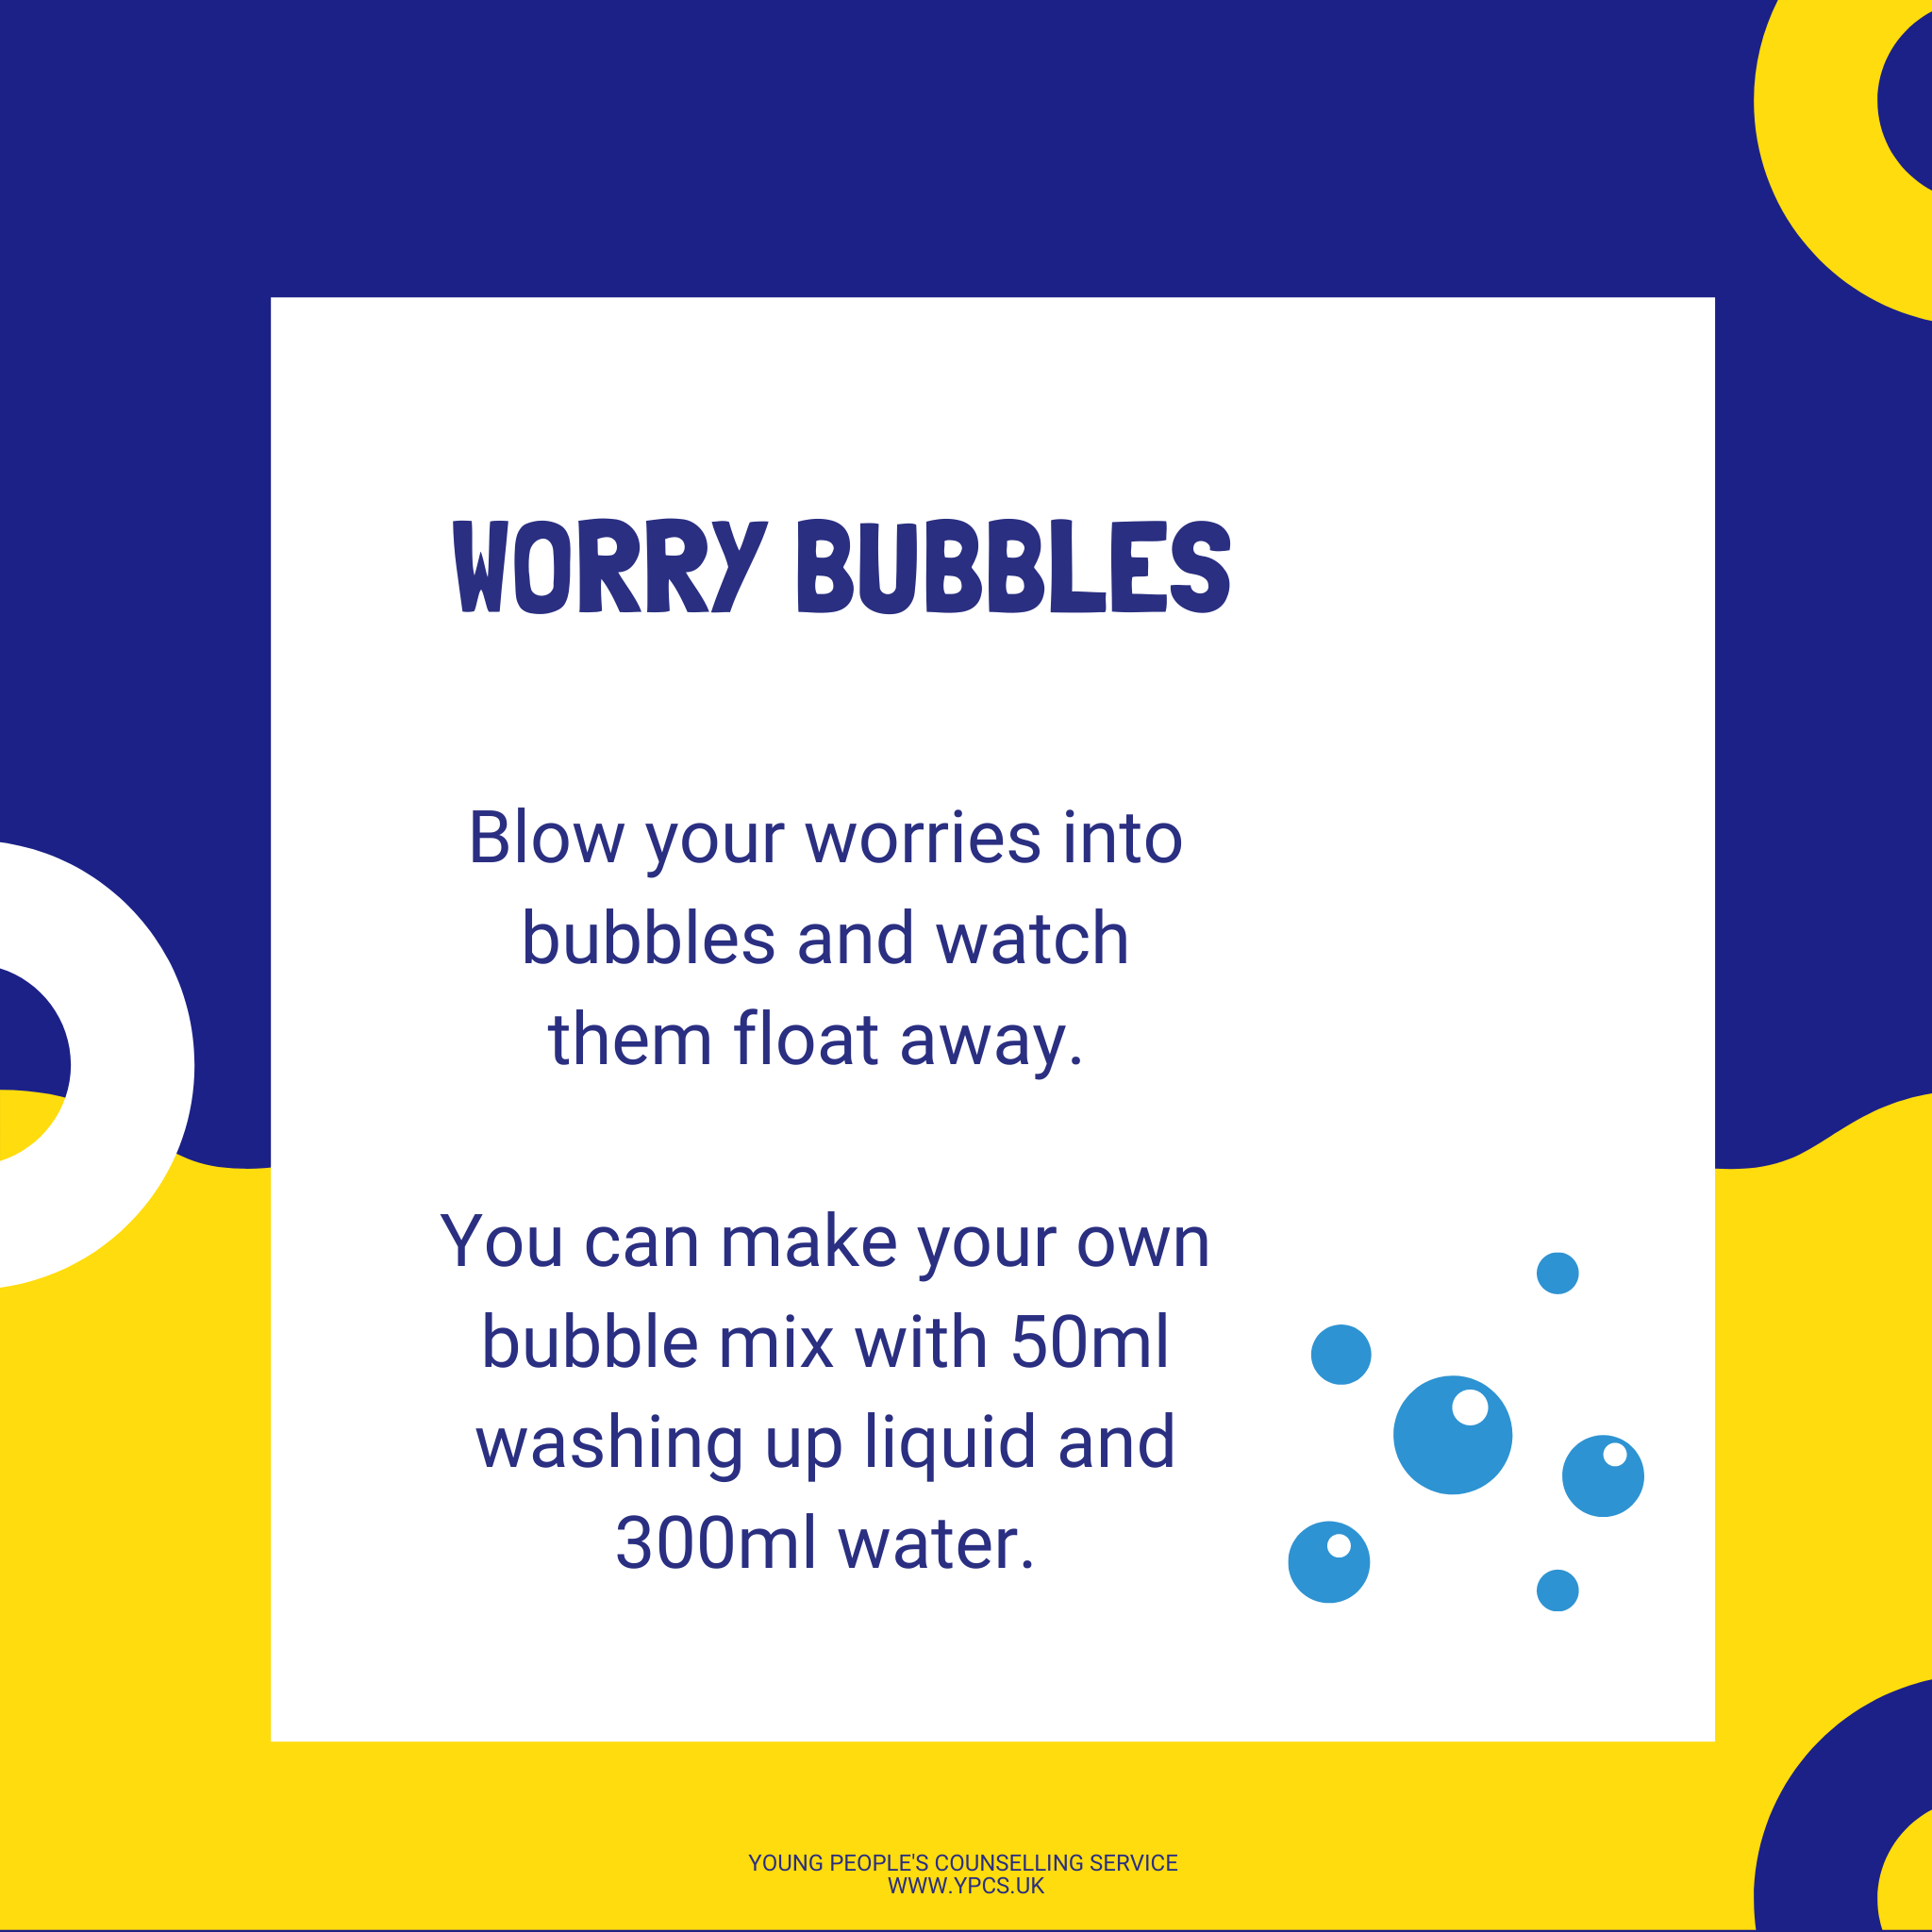 Worry Bubbles